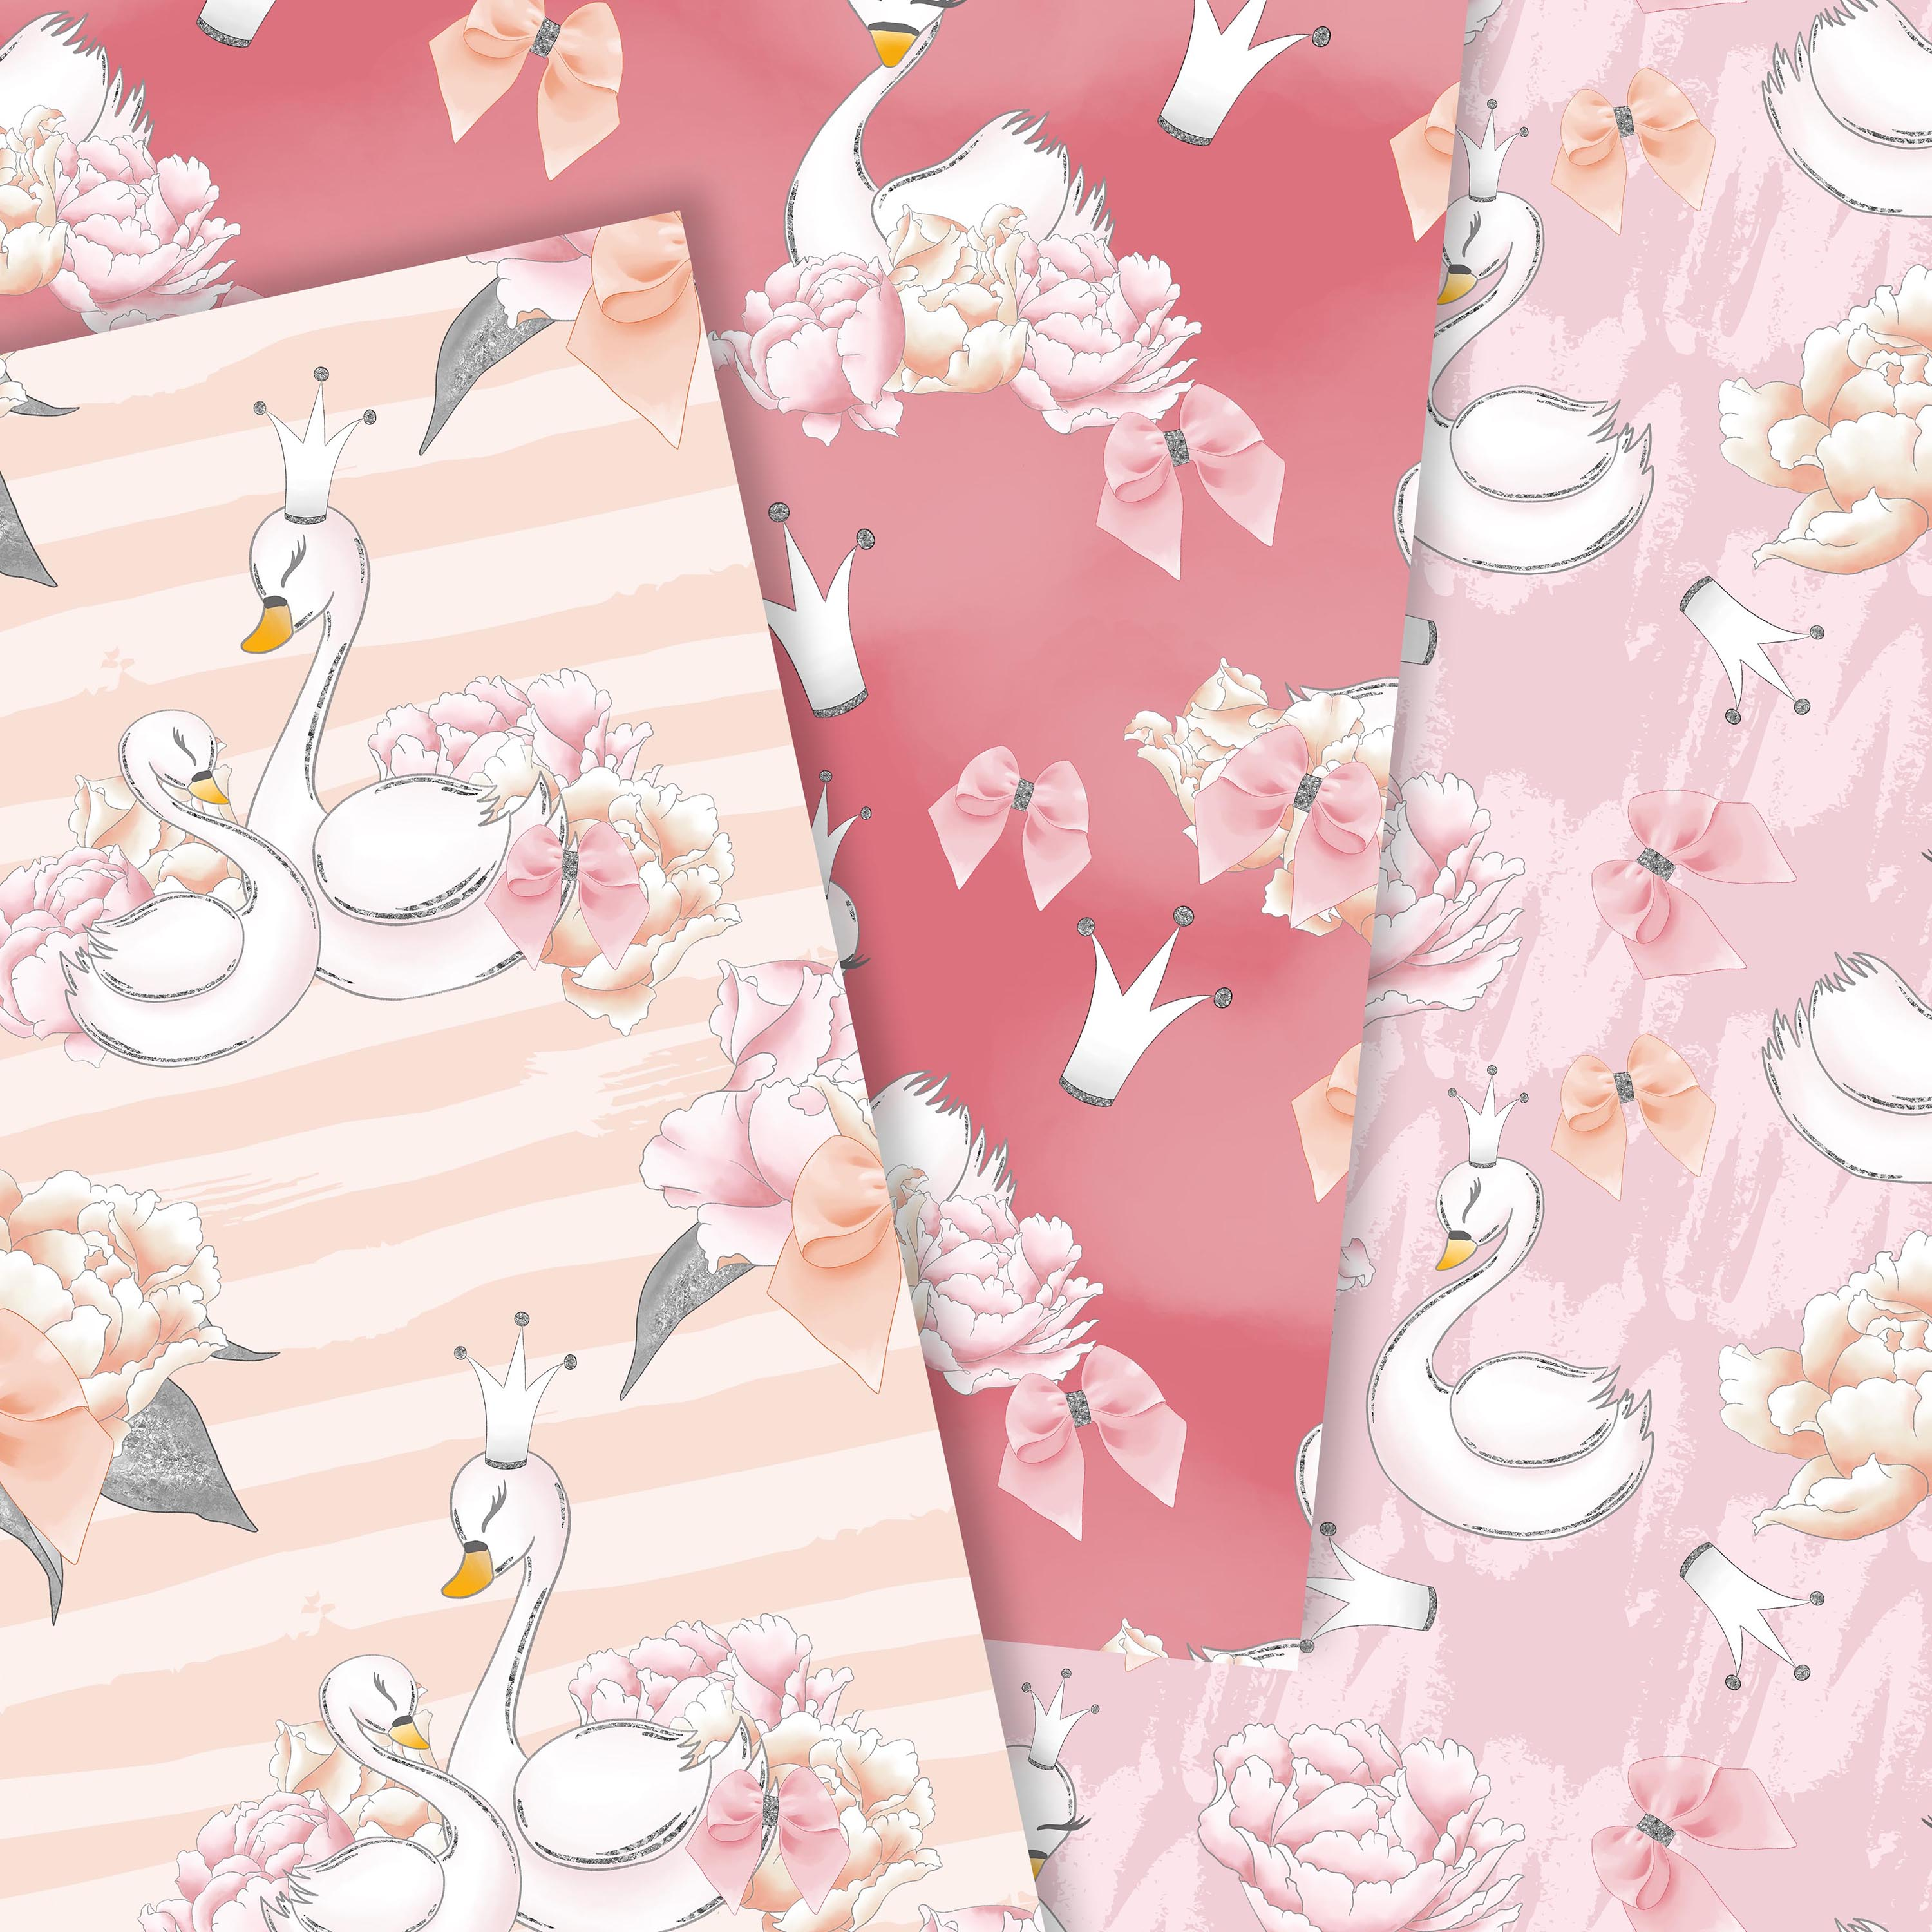 Wild swans patterns example image 3